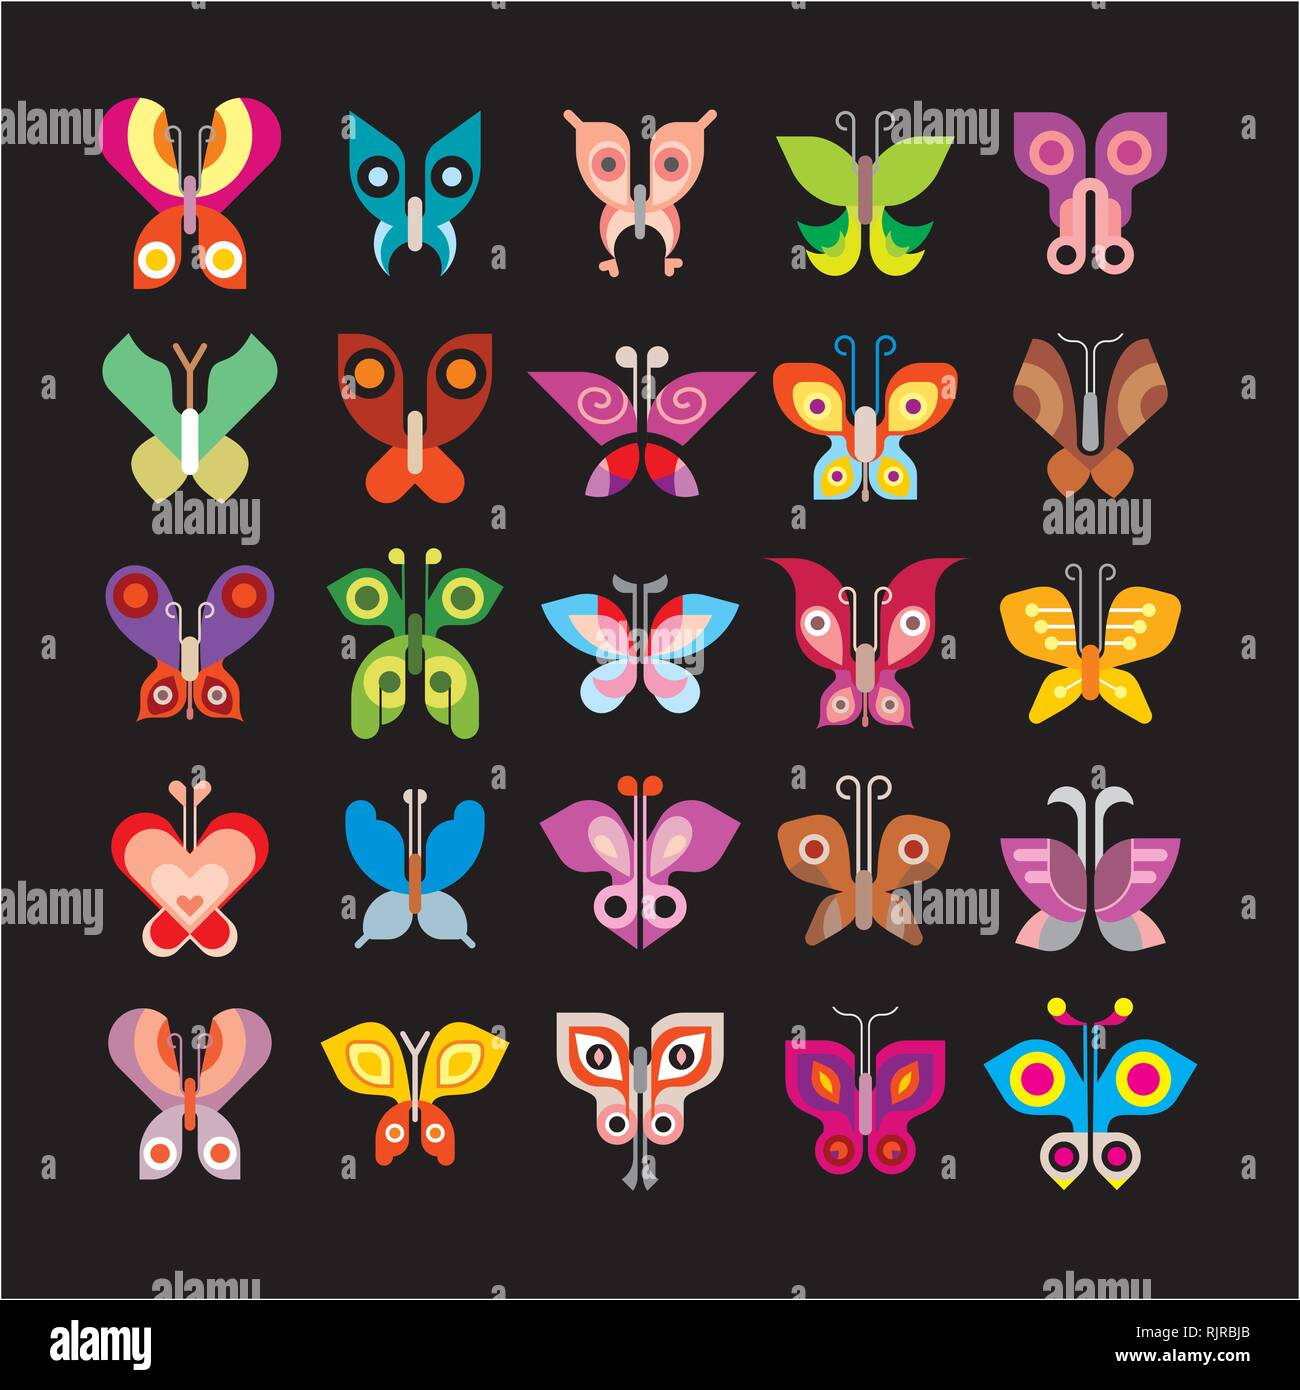 Butterfly - large set of isolated vector icons on black background. Can be used as logo (logotypes). - Stock Vector